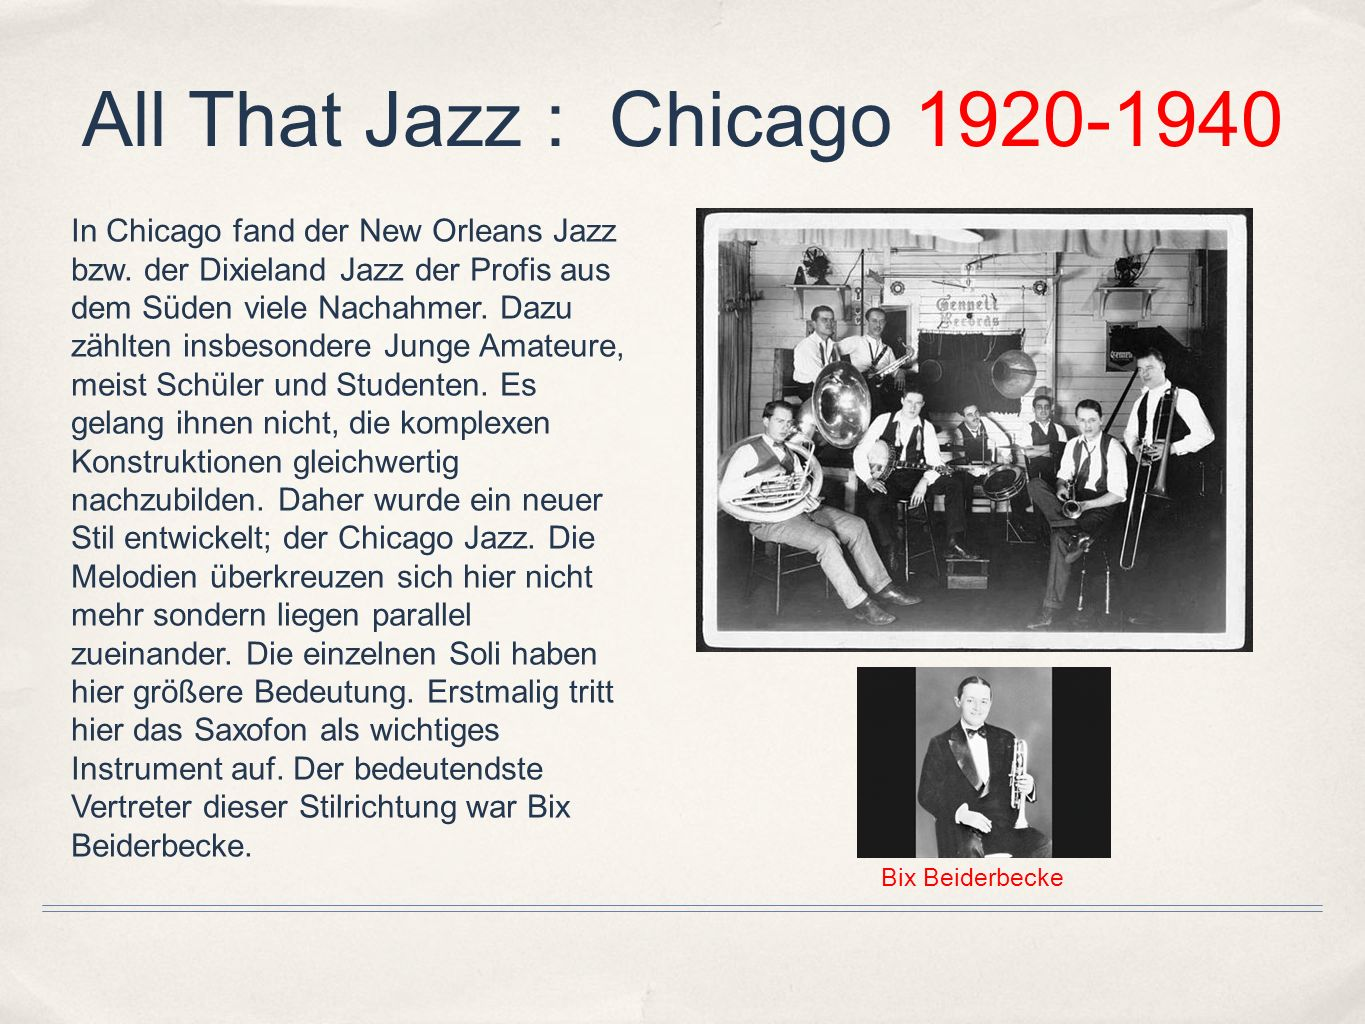 All That Jazz : Chicago 1920-1940